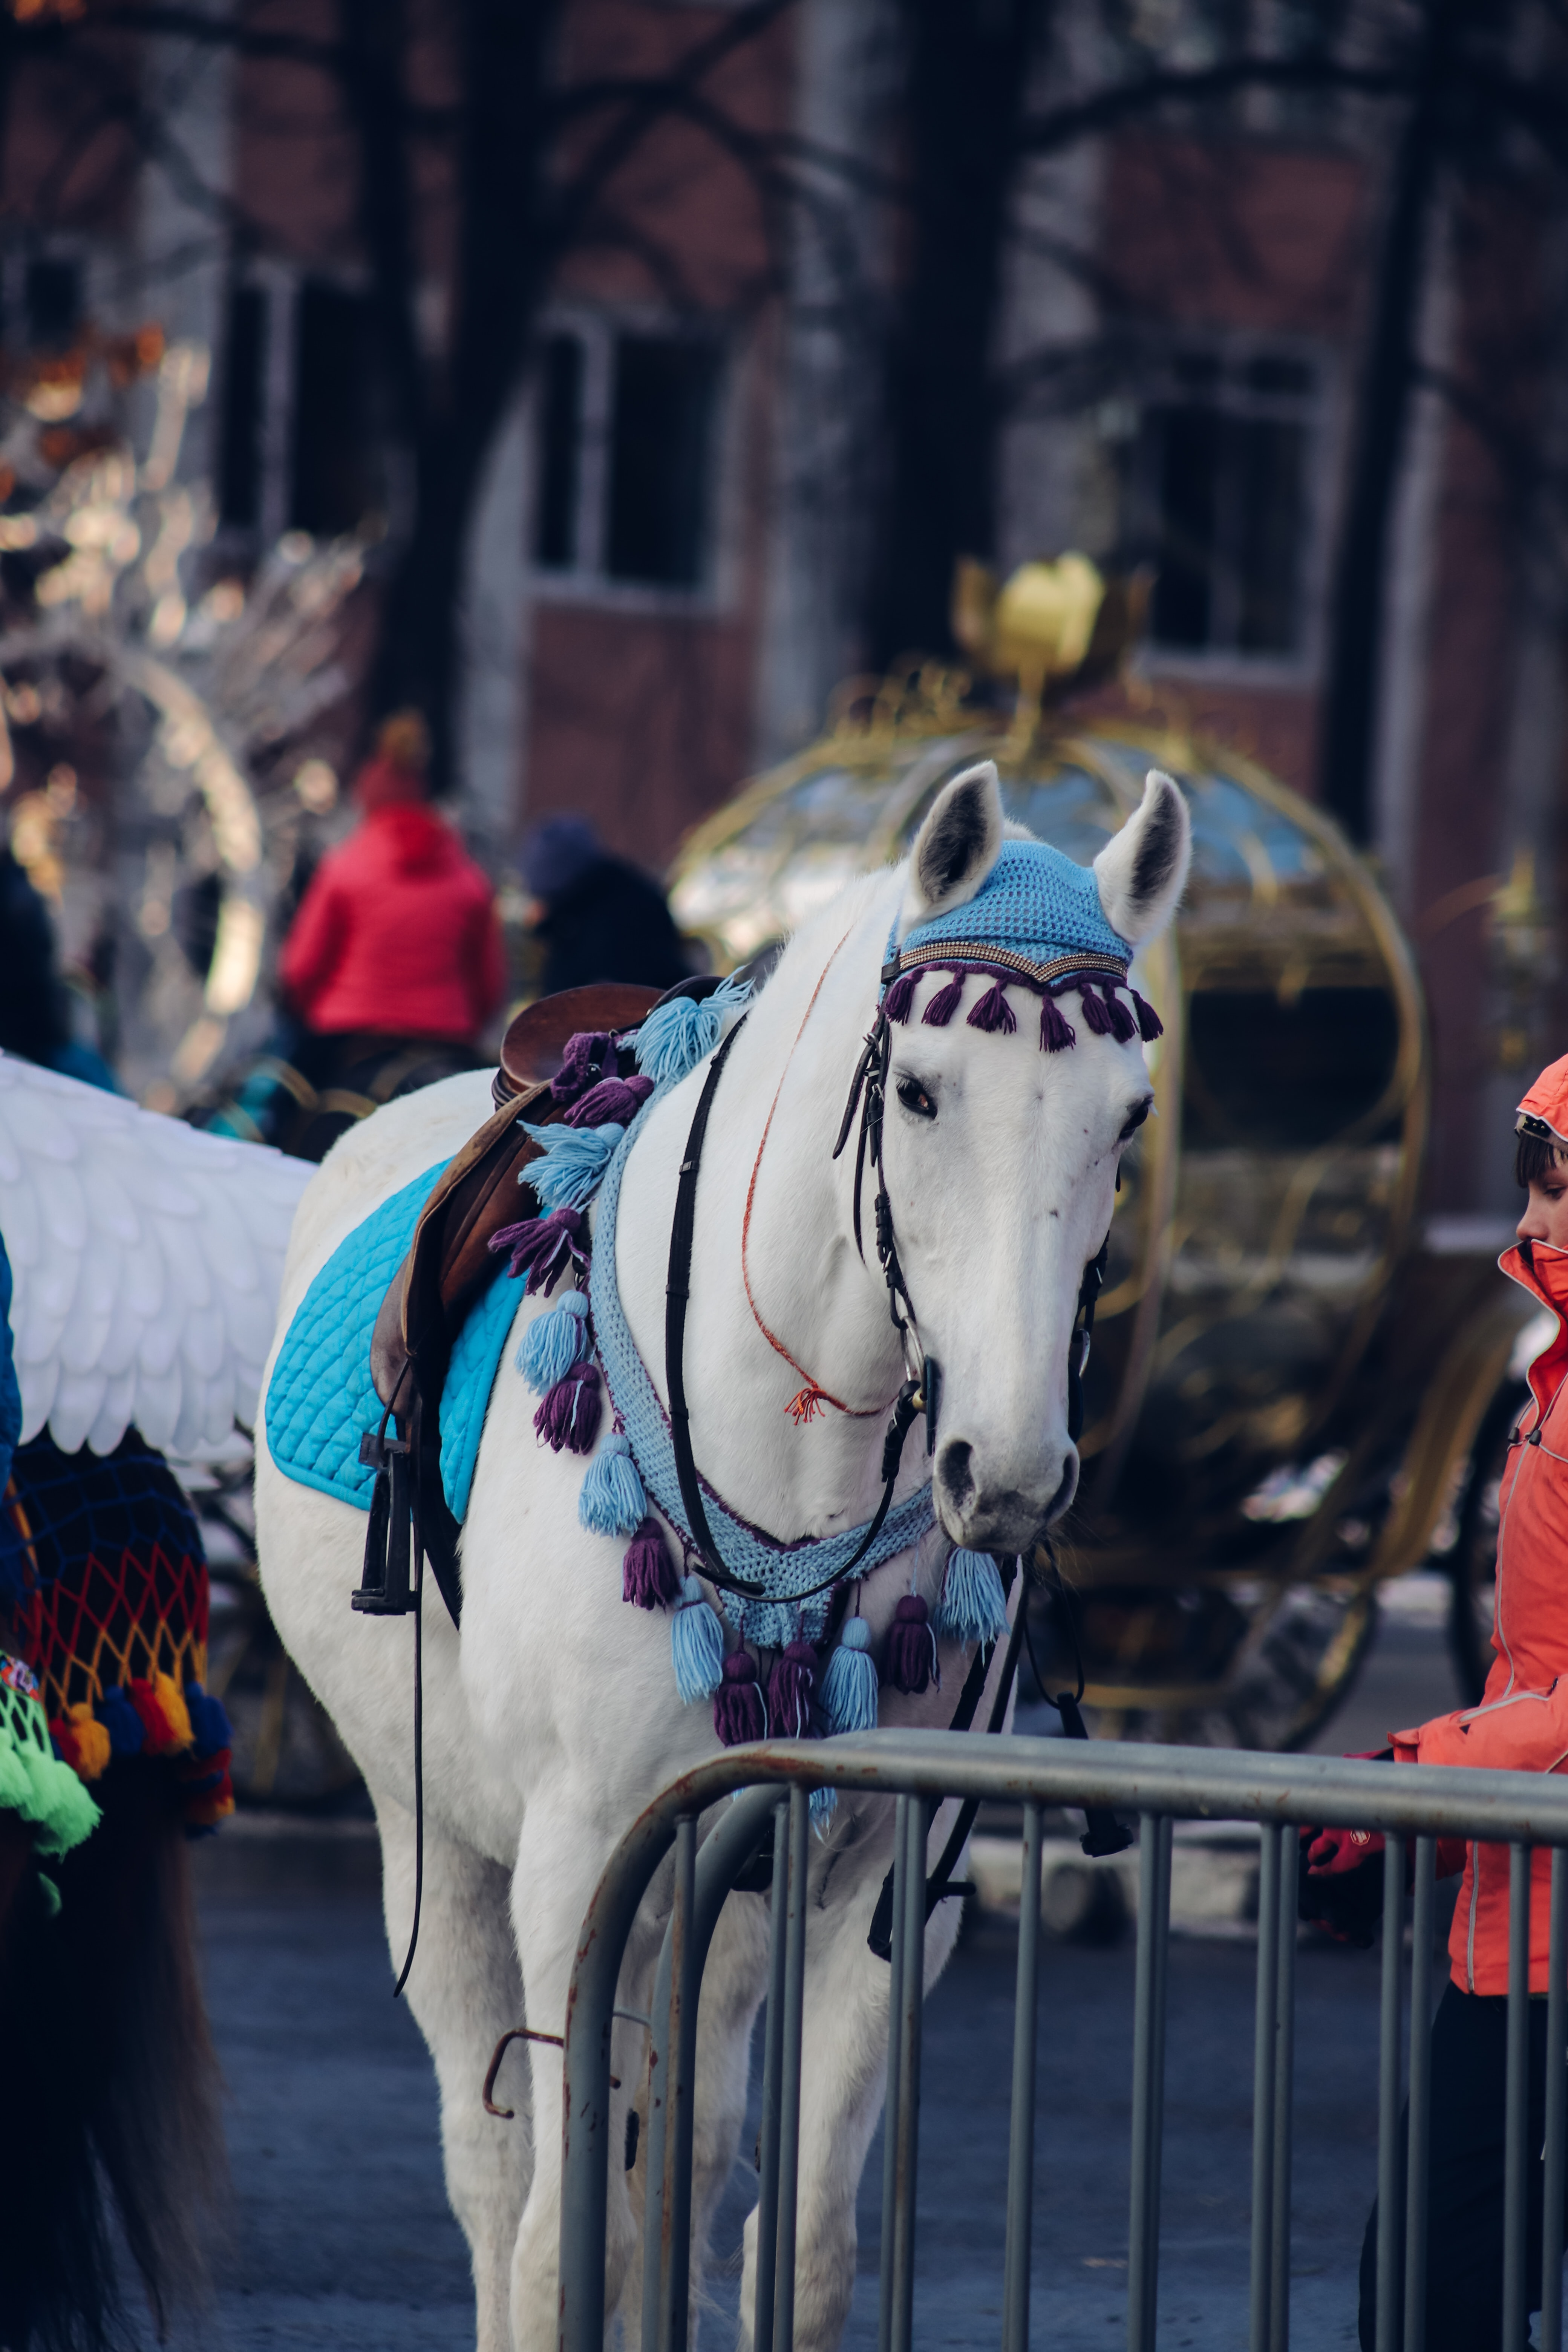 White Horse With Red And Blue Horse Carriage Photo Free Animal Image On Unsplash